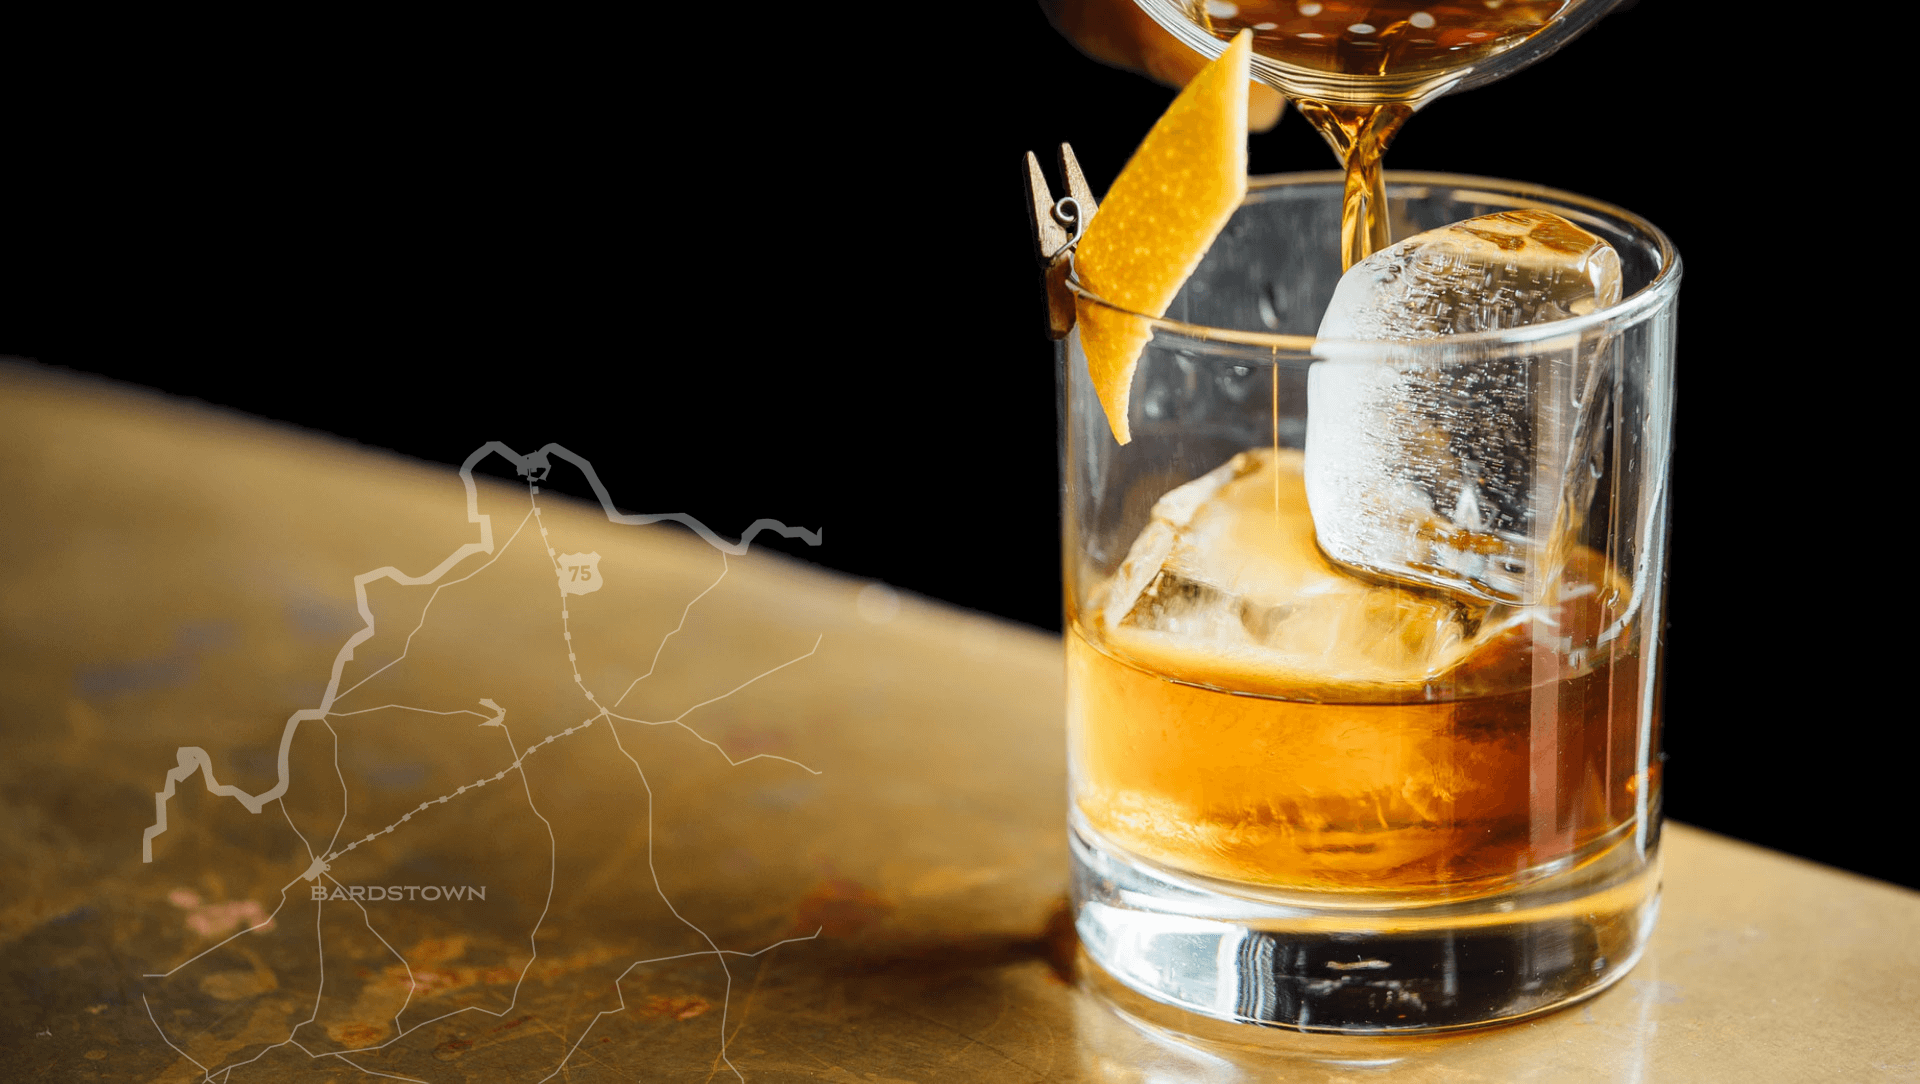 Map of Bardstown overlaid on image with bourbon on the rocks drink